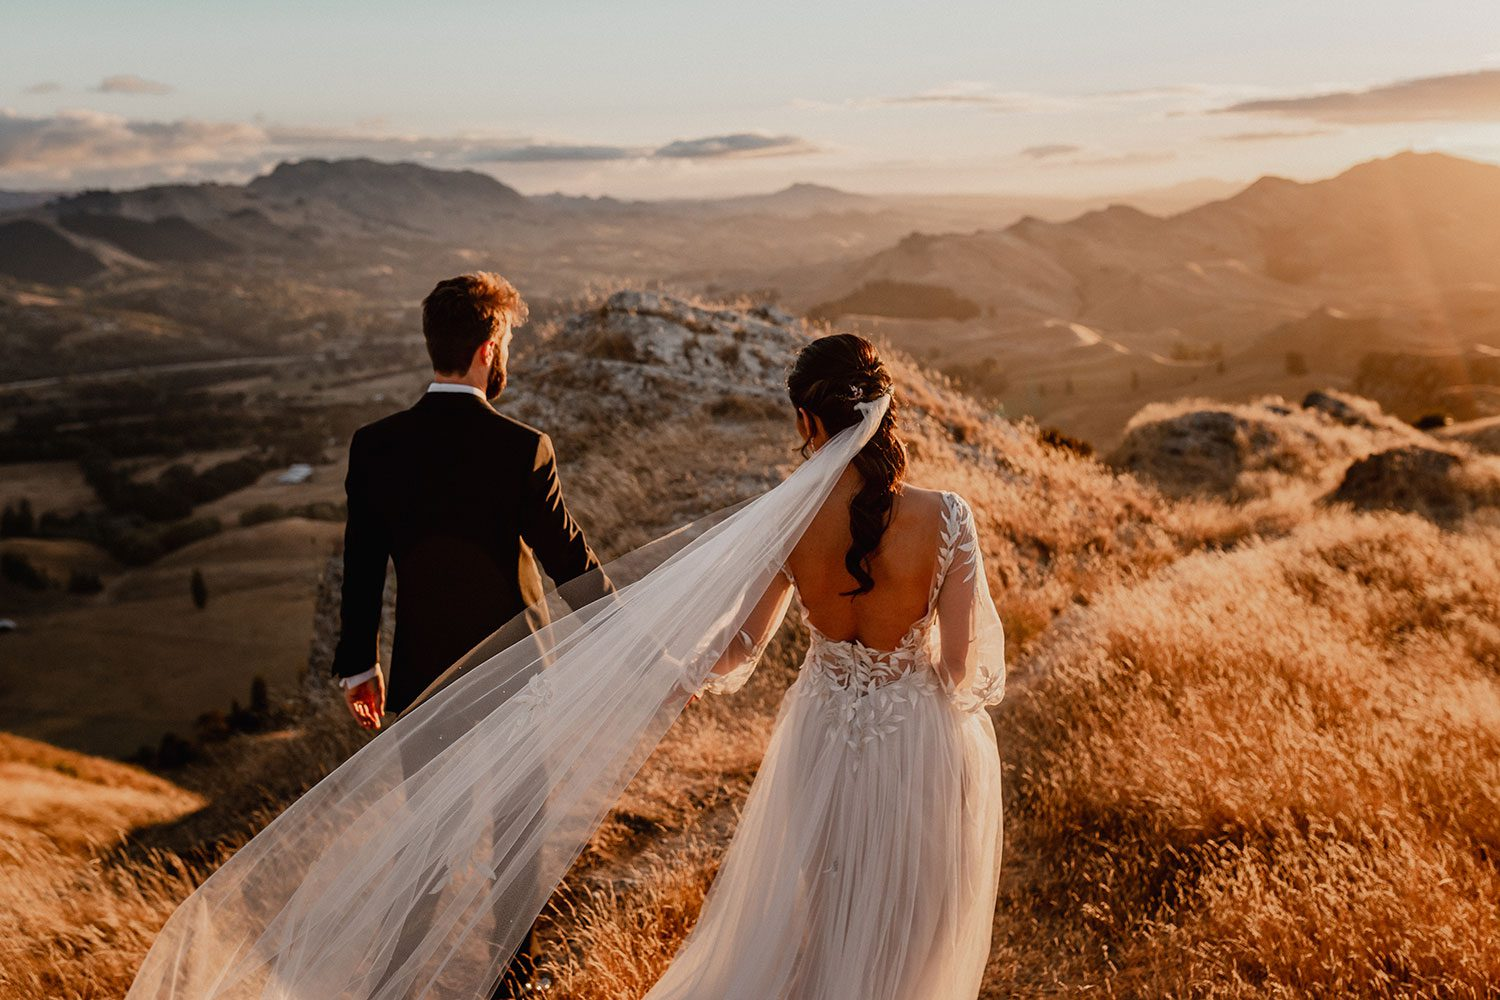 Bride wearing bespoke designer wedding dress by Vinka Bridal Boutique NZ, adorned with delicate applique lace and puffed sleeves - holding hands on hill